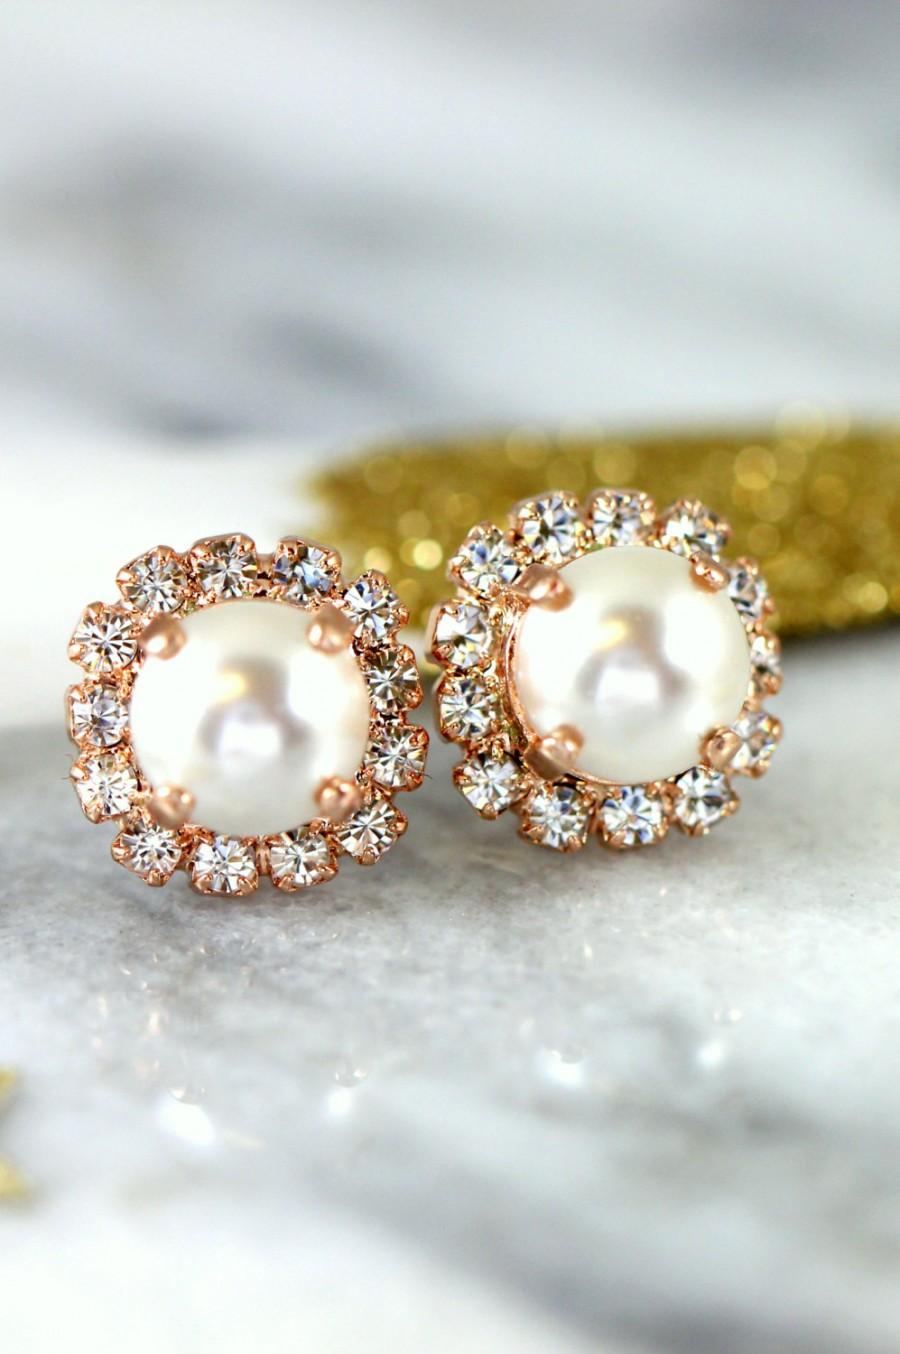 b johnlewis online gold main stud pdp white buya rsp freshwater earrings a davis pearl at